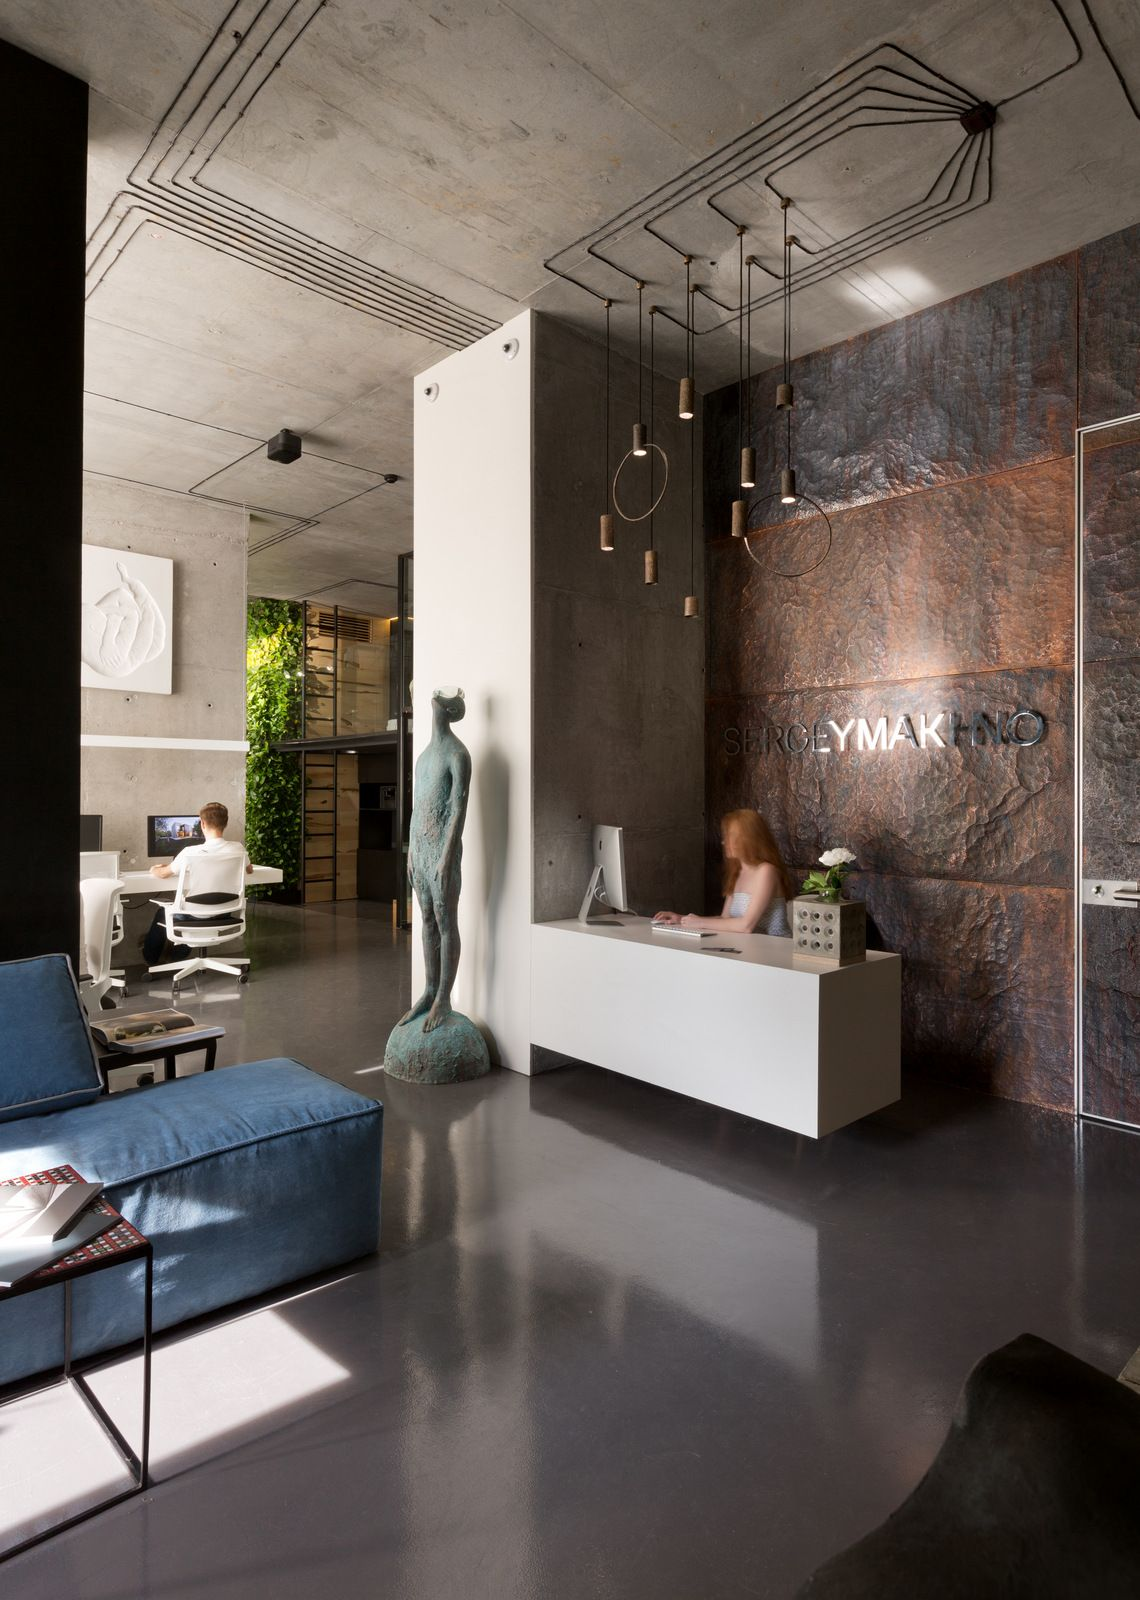 architects office design. Sergey Makhno Architects - Kiev Offices Interesting Way To Hang Electrical Outlents Office Design